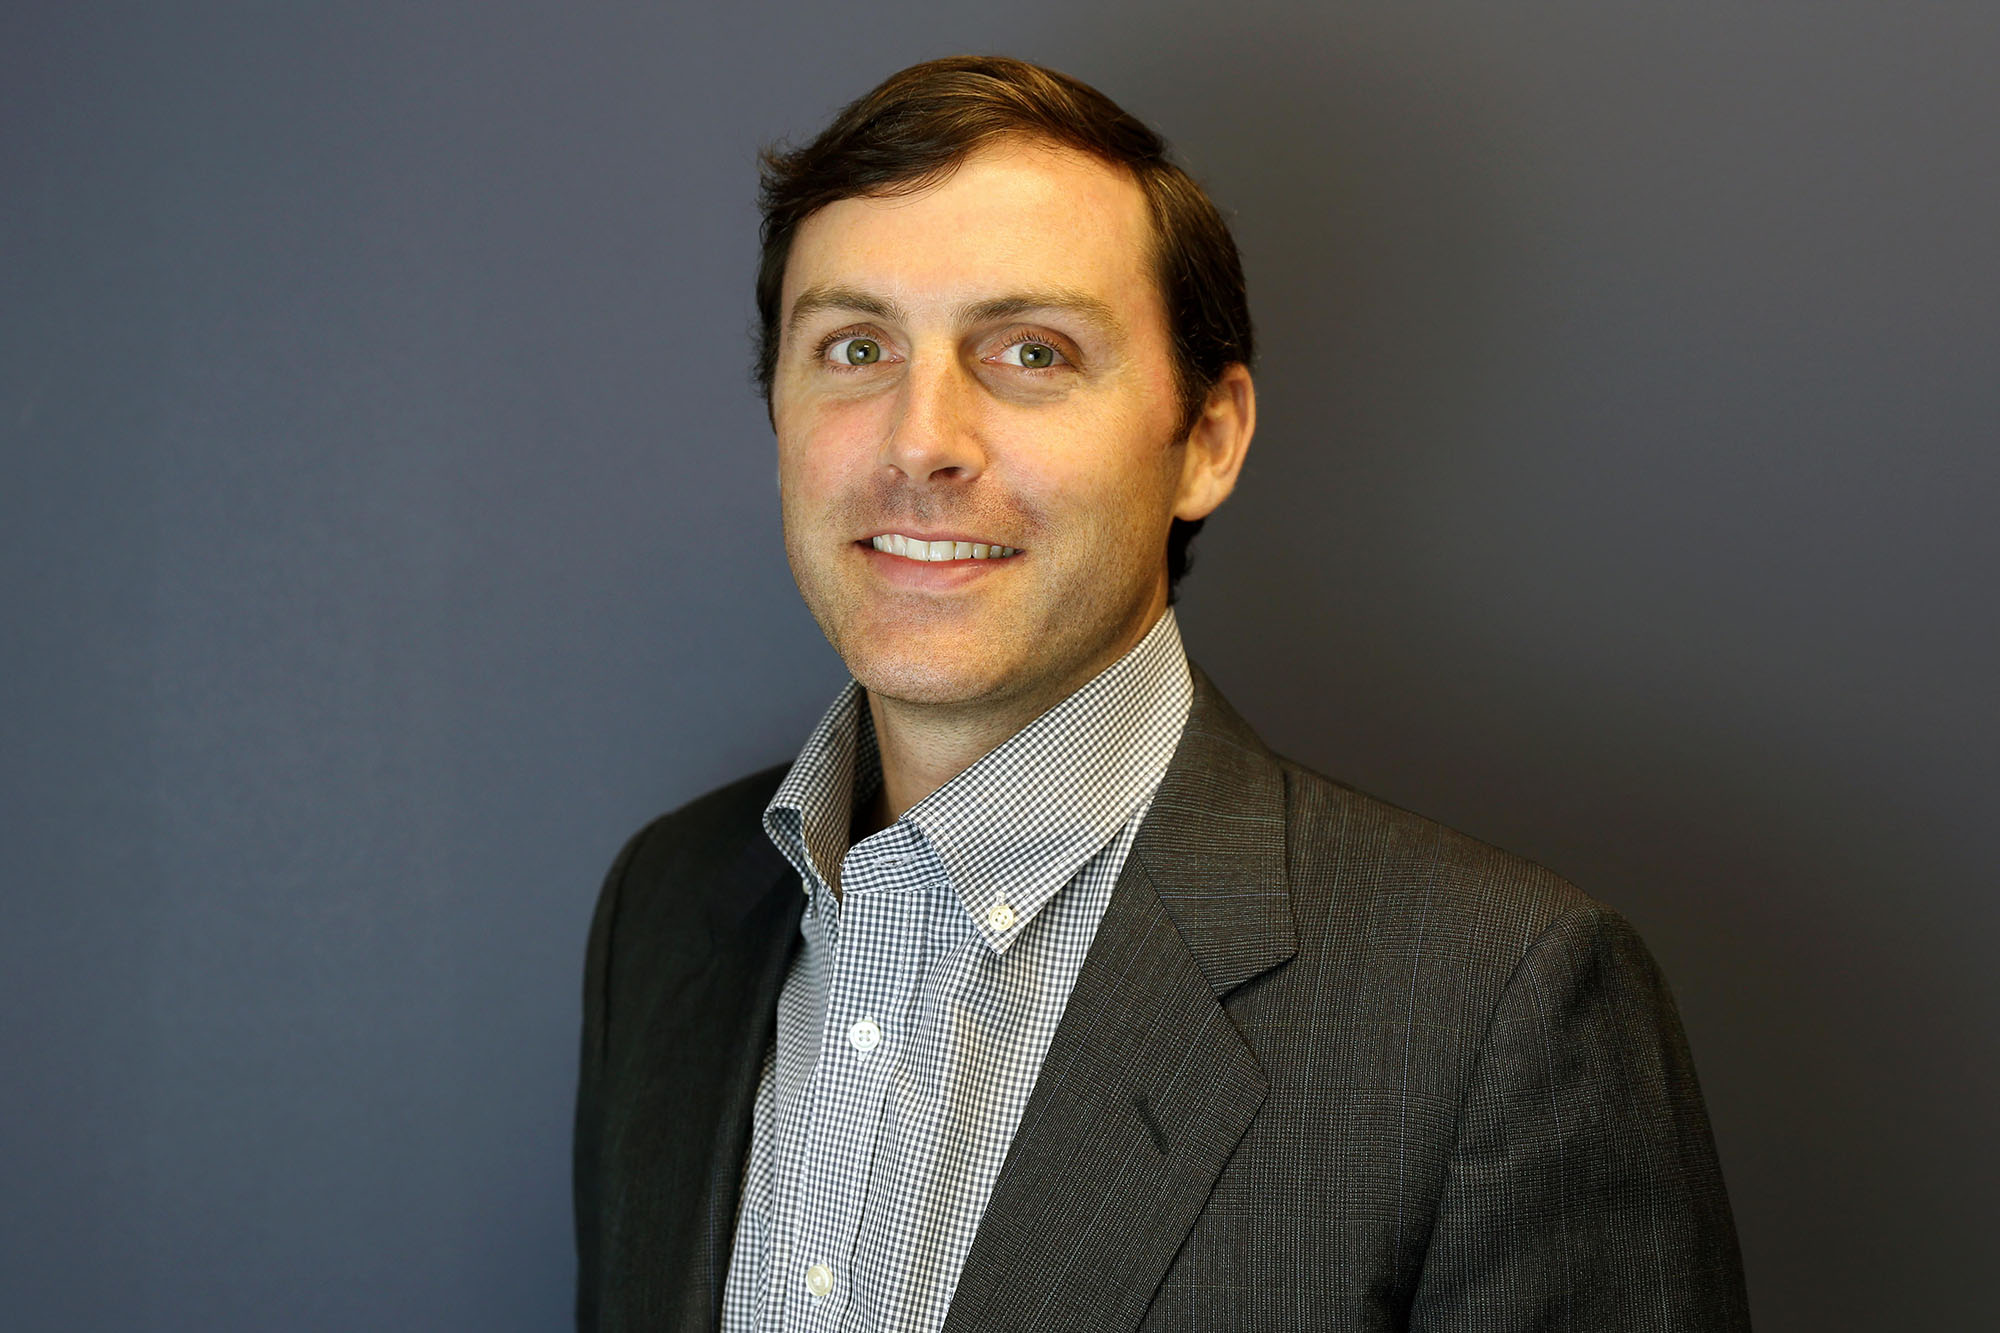 Cary Hudgins, VP of Product